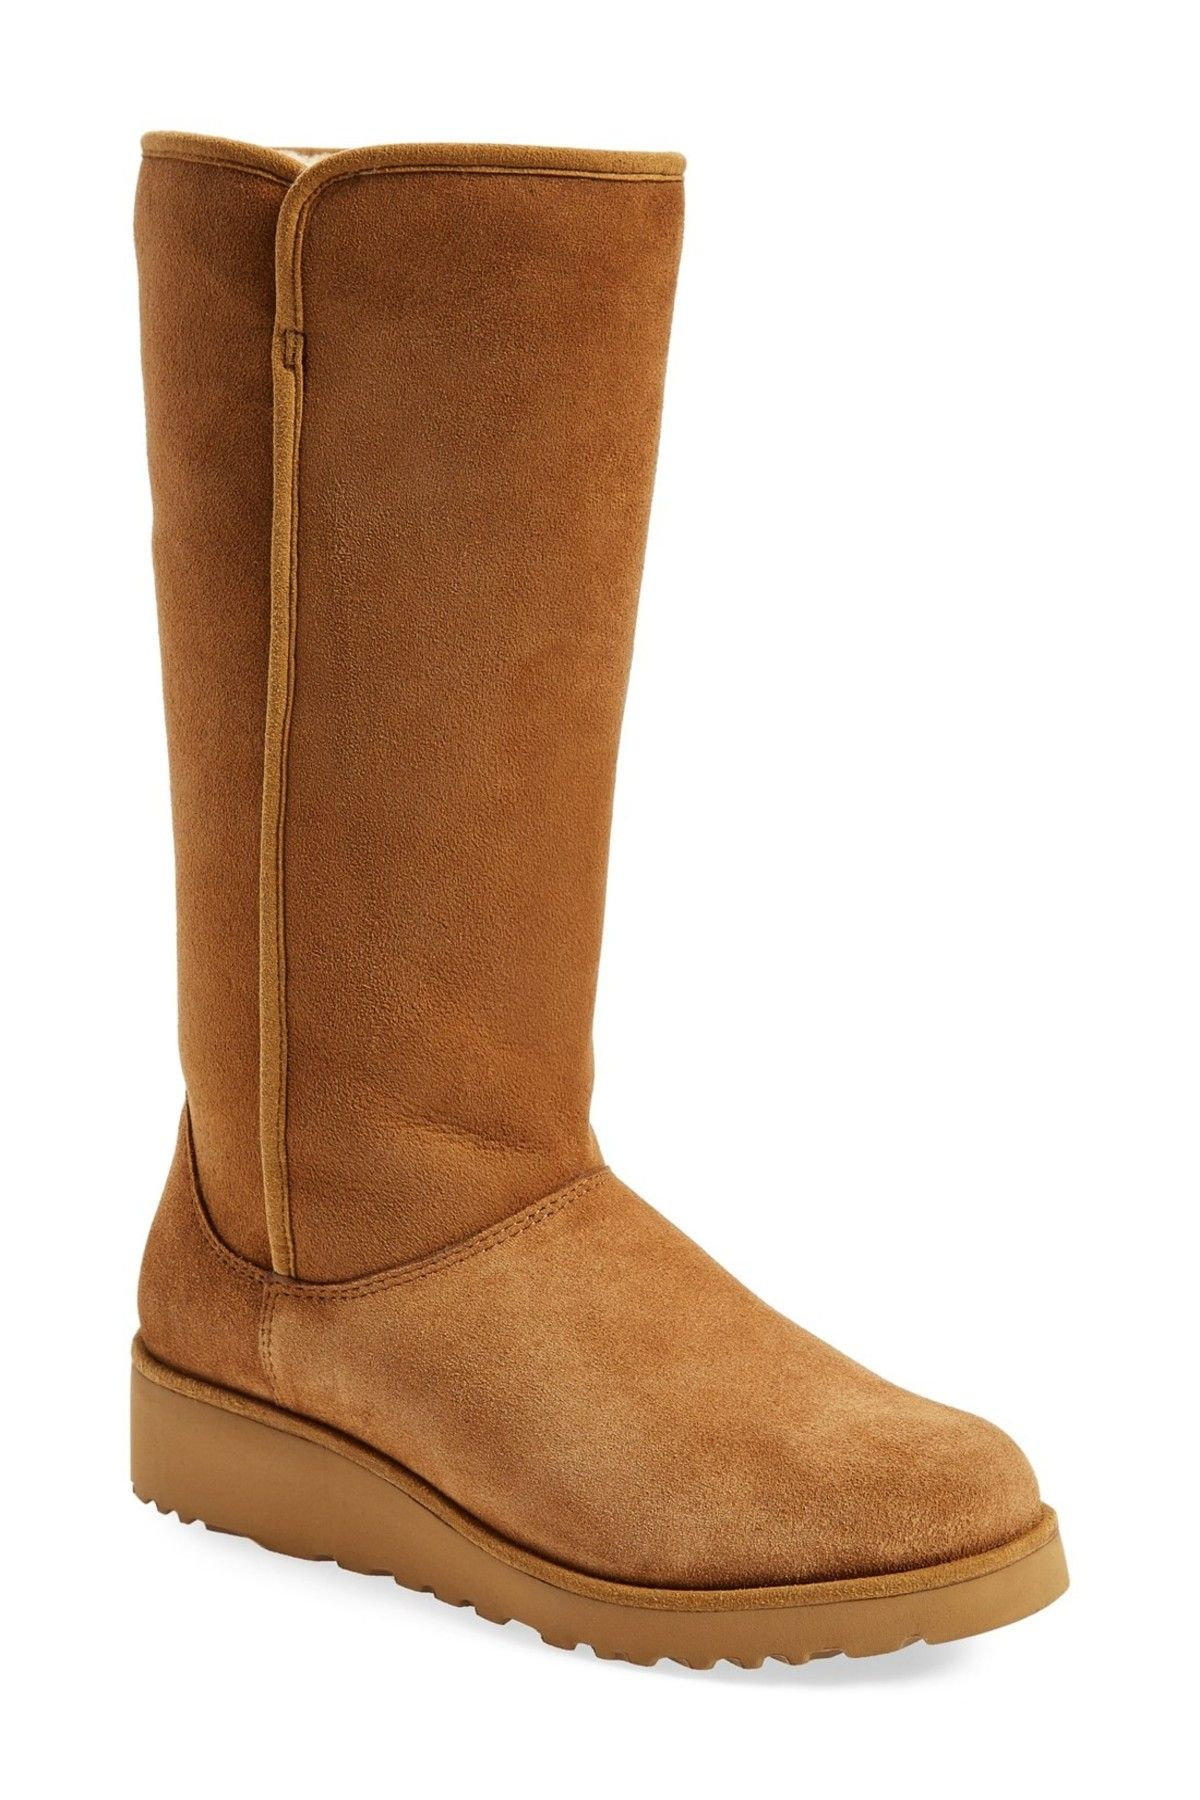 6ef3ec6b5 UGG | Kara - Classic Slim(TM) Water Resistant Tall Boot | Products ...